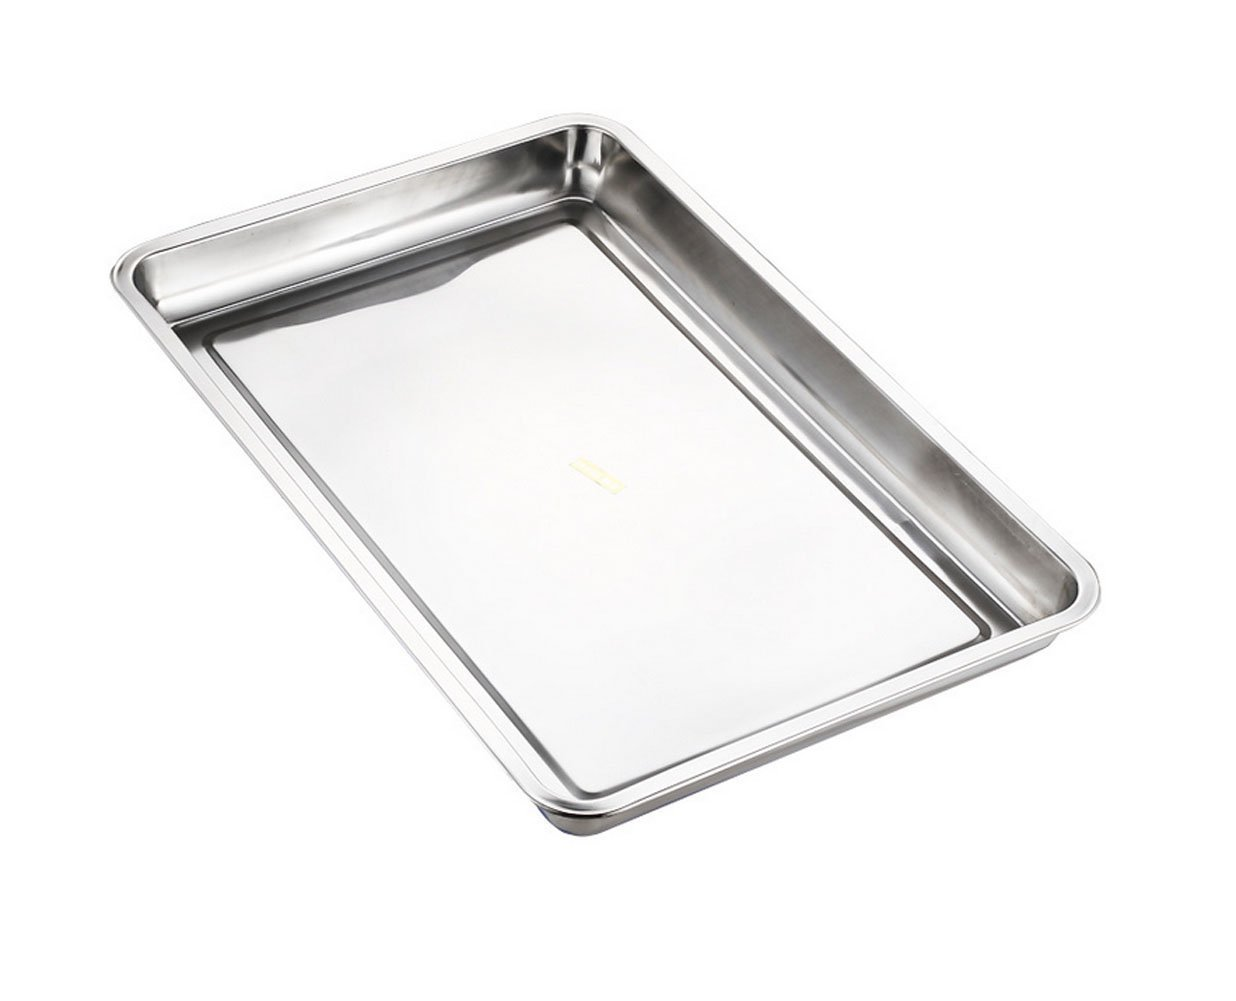 Lianzhi Hotel And Catering Business Stainless Steel Baking Pan Half Thickness 0f 0.5MM (8.6612.600.79)